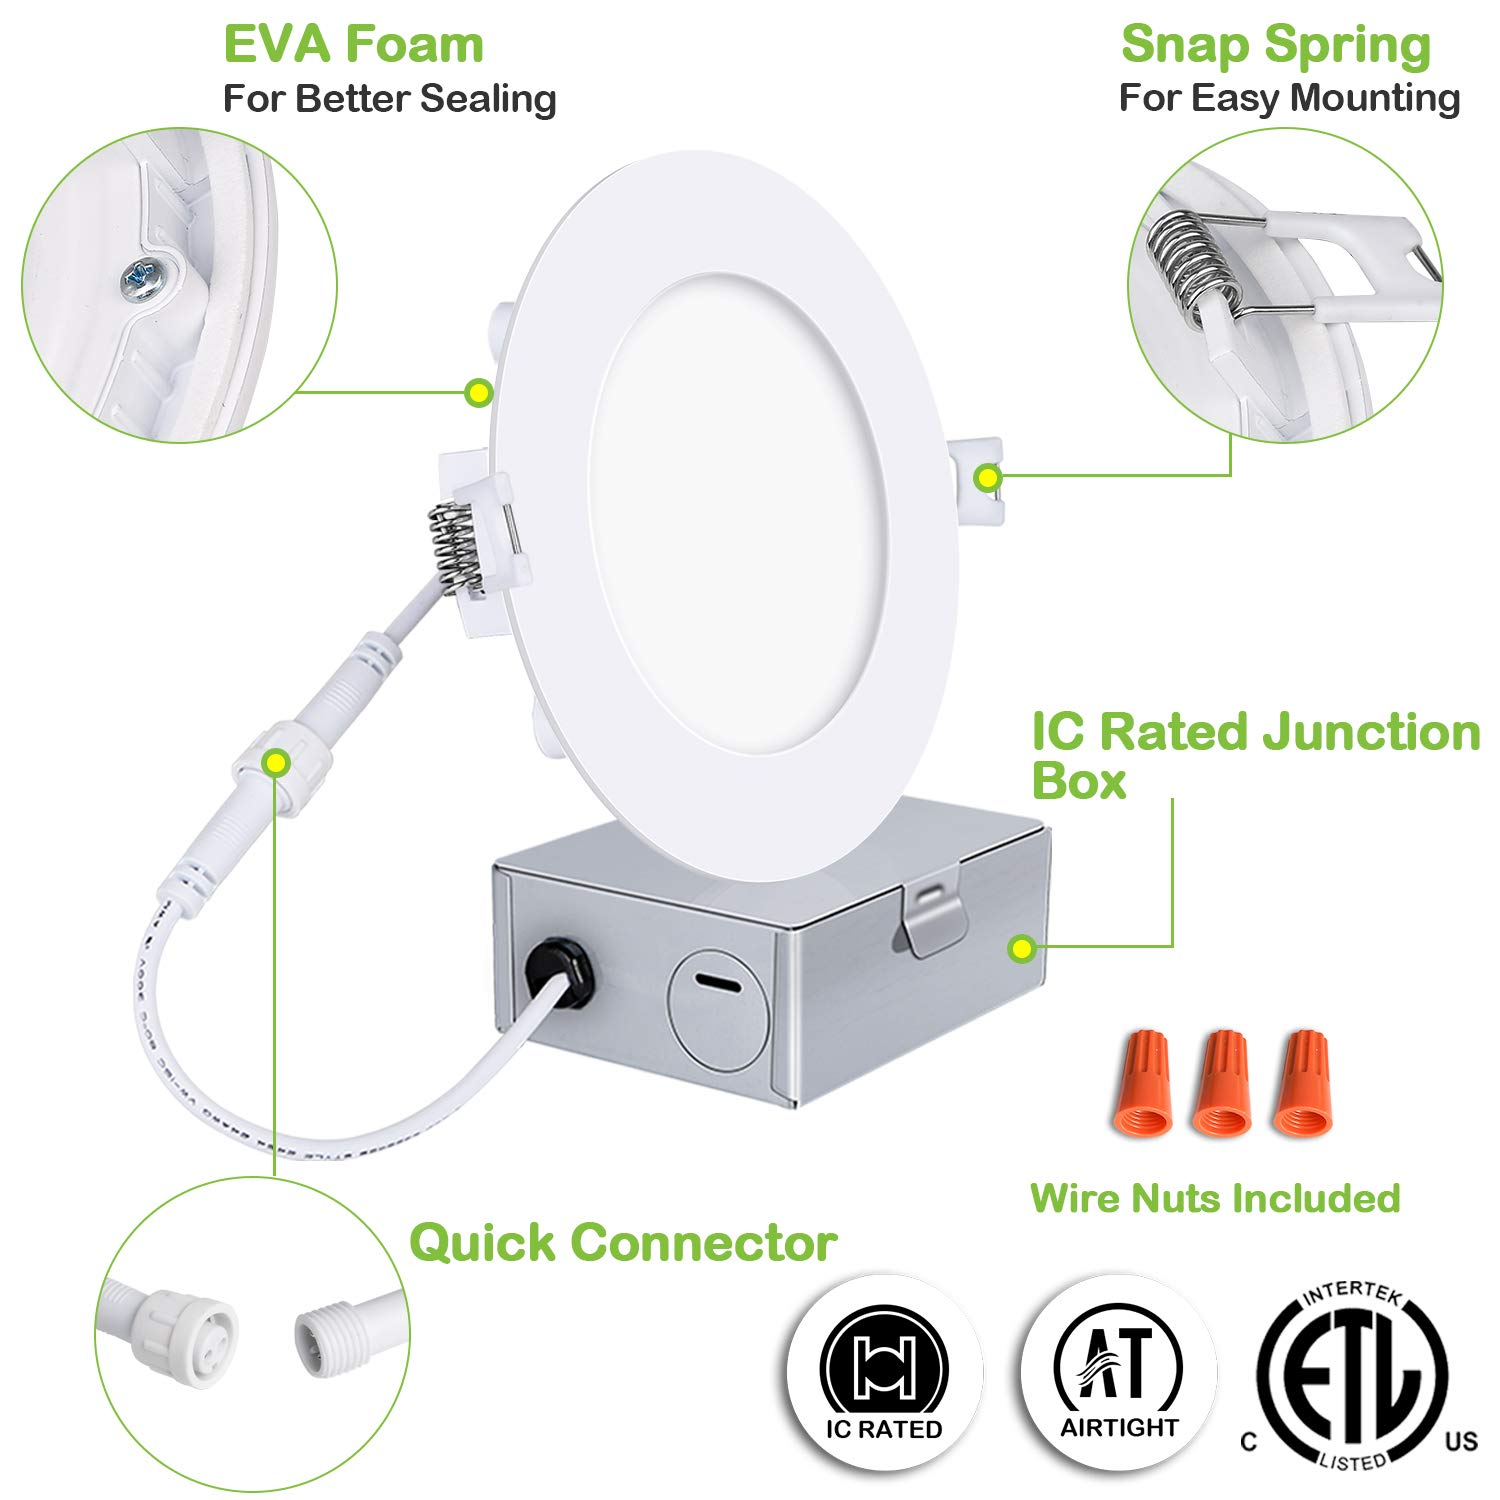 Hykolity 12 Pack 10W 4 Inch LED Slim Recessed Ceiling Light, 800lm, CRI90, 4000K Neutral White, Low Profile Downlight with Junction Box Dimmable, ETL& Energy Star Listed,Title 24 Compliant by hykolity (Image #5)